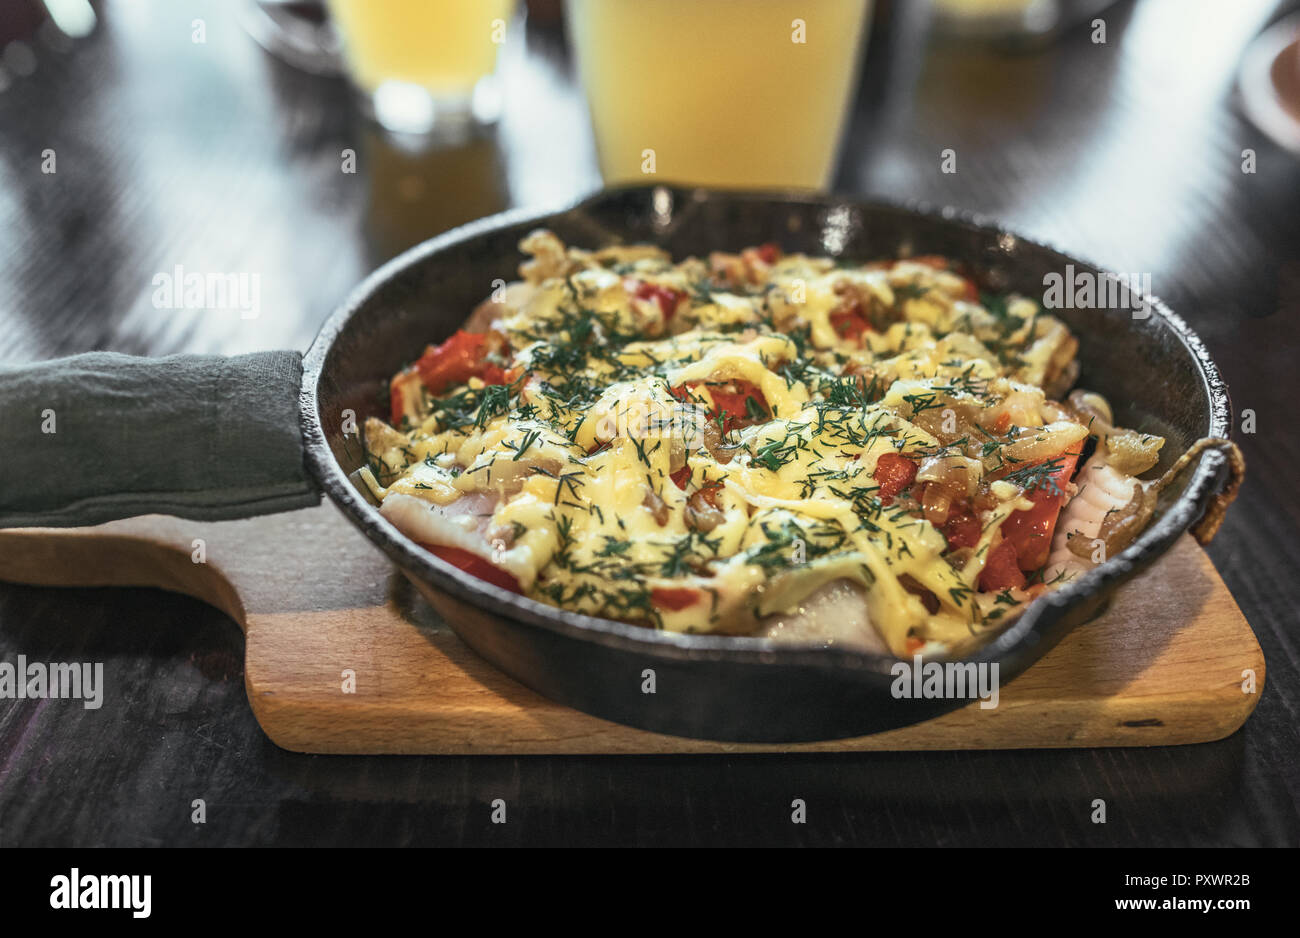 Frying pan with meat, vegetables and potatoes under melted cheese with golden beer Stock Photo